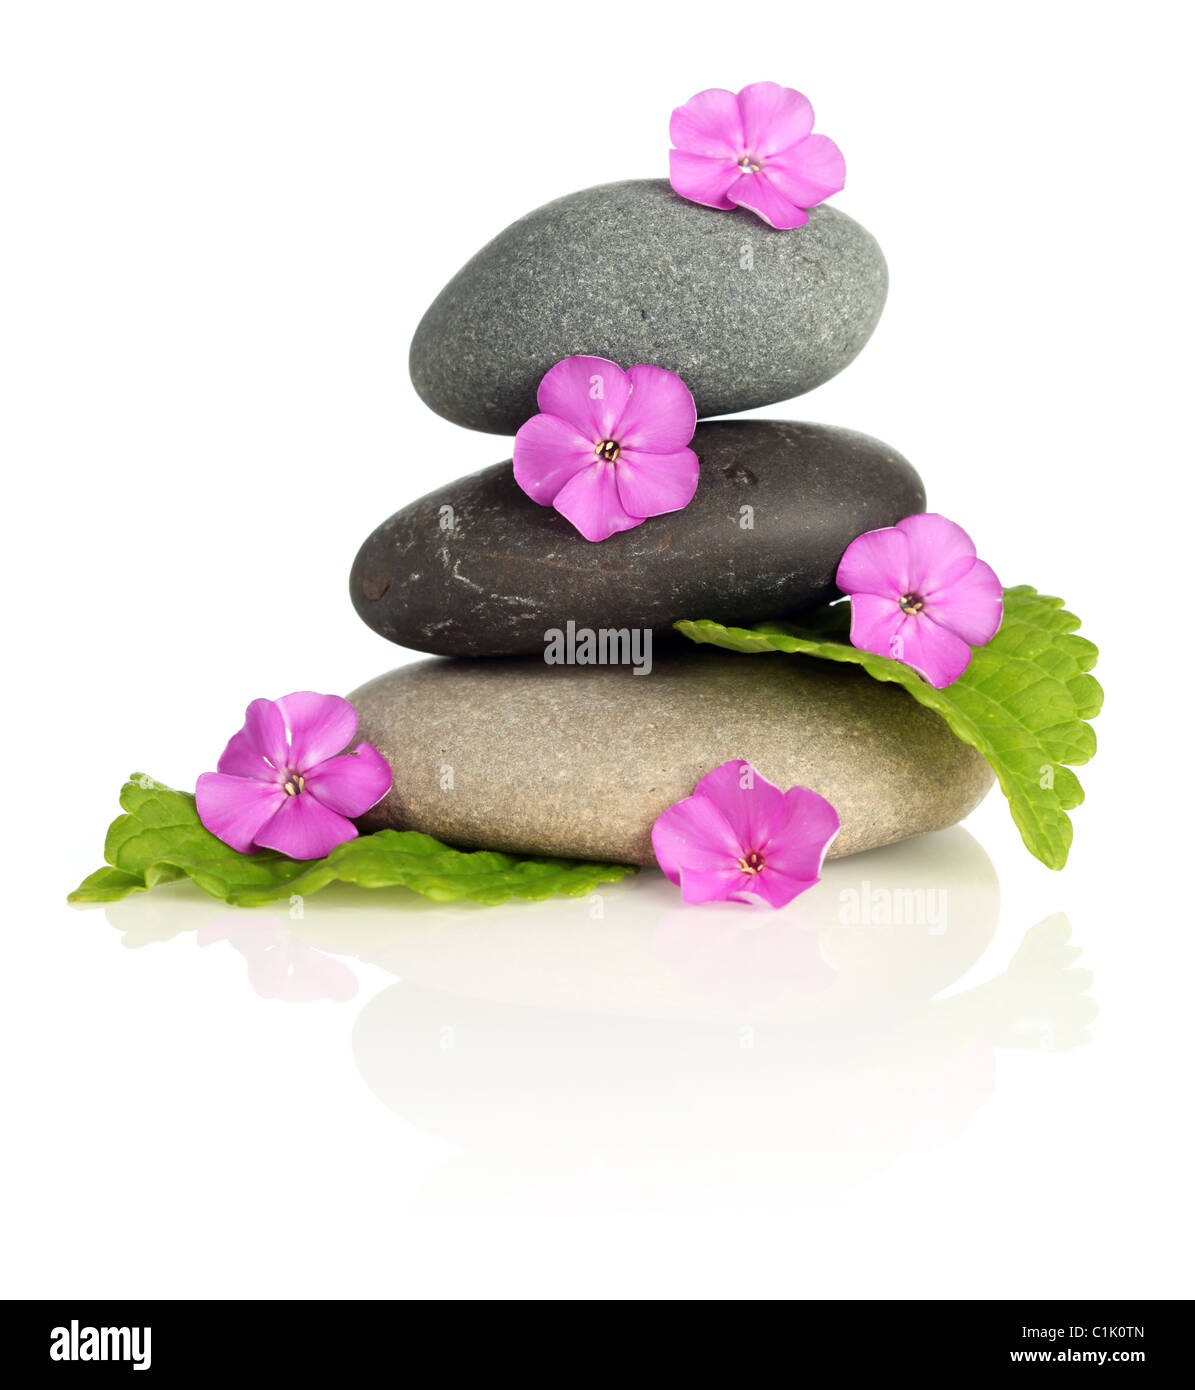 Stacked stones with flowers - Stock Image